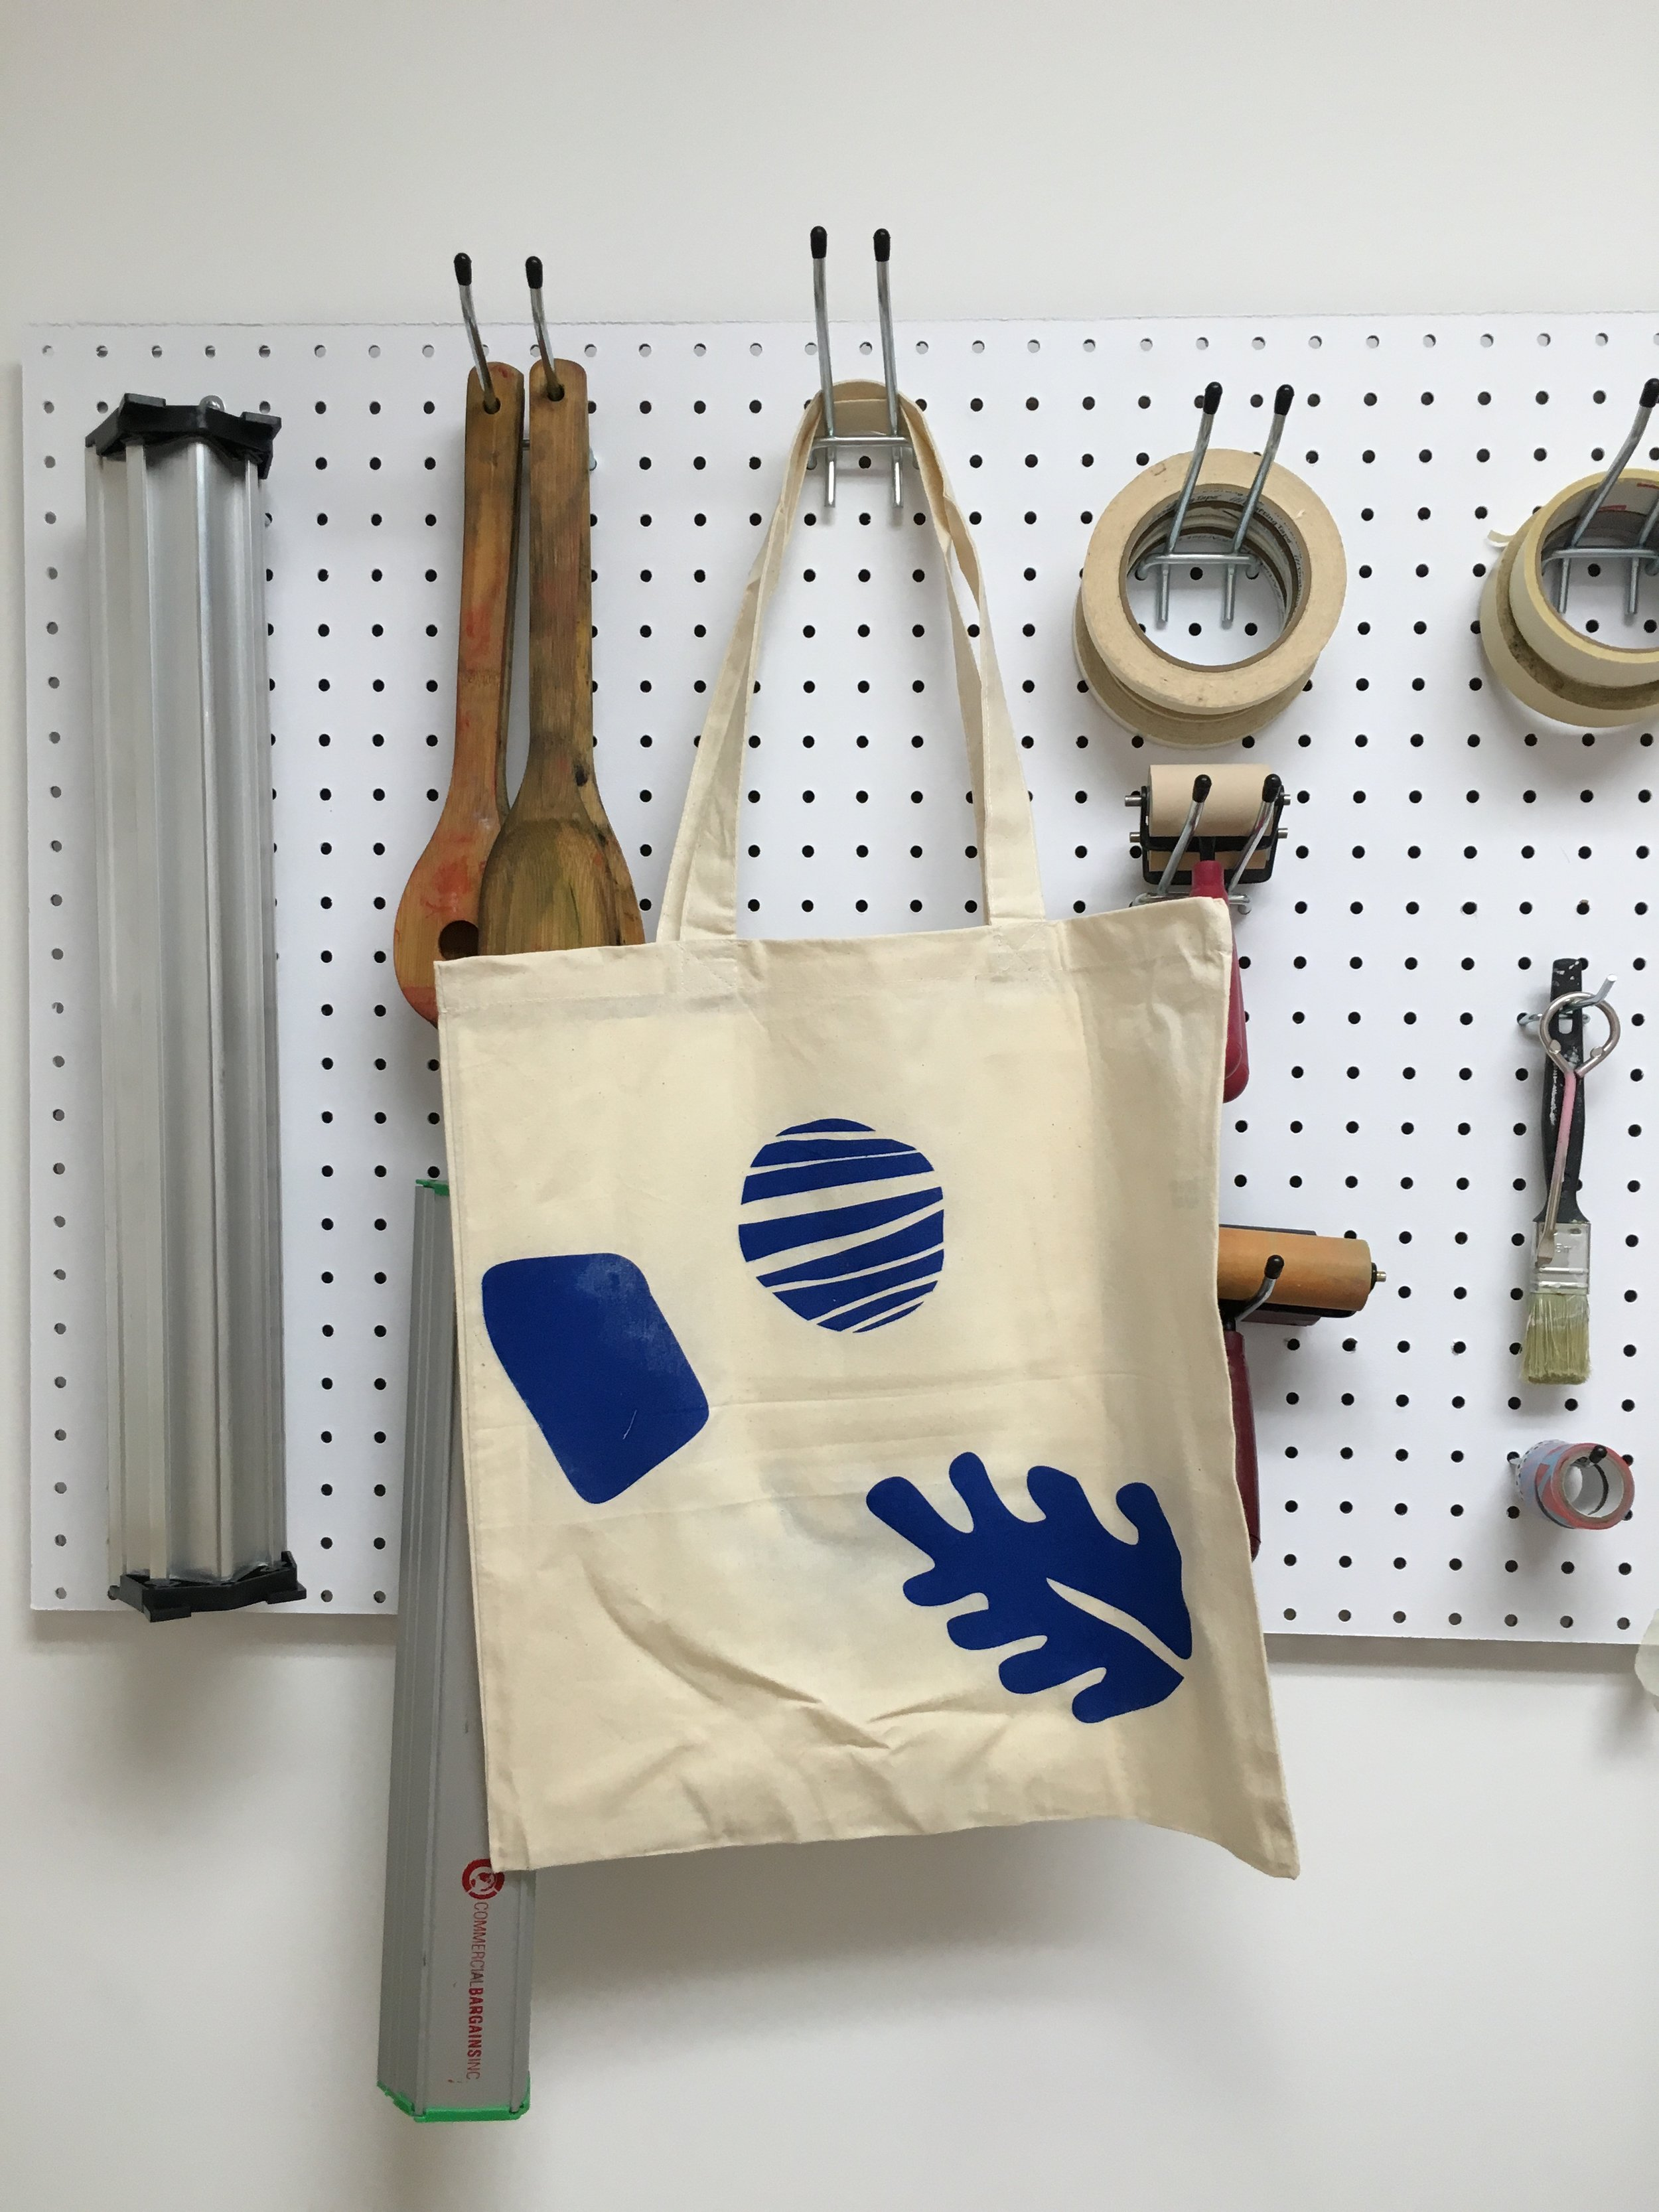 ANOTHER TOTE BAG FOR THE WORLD